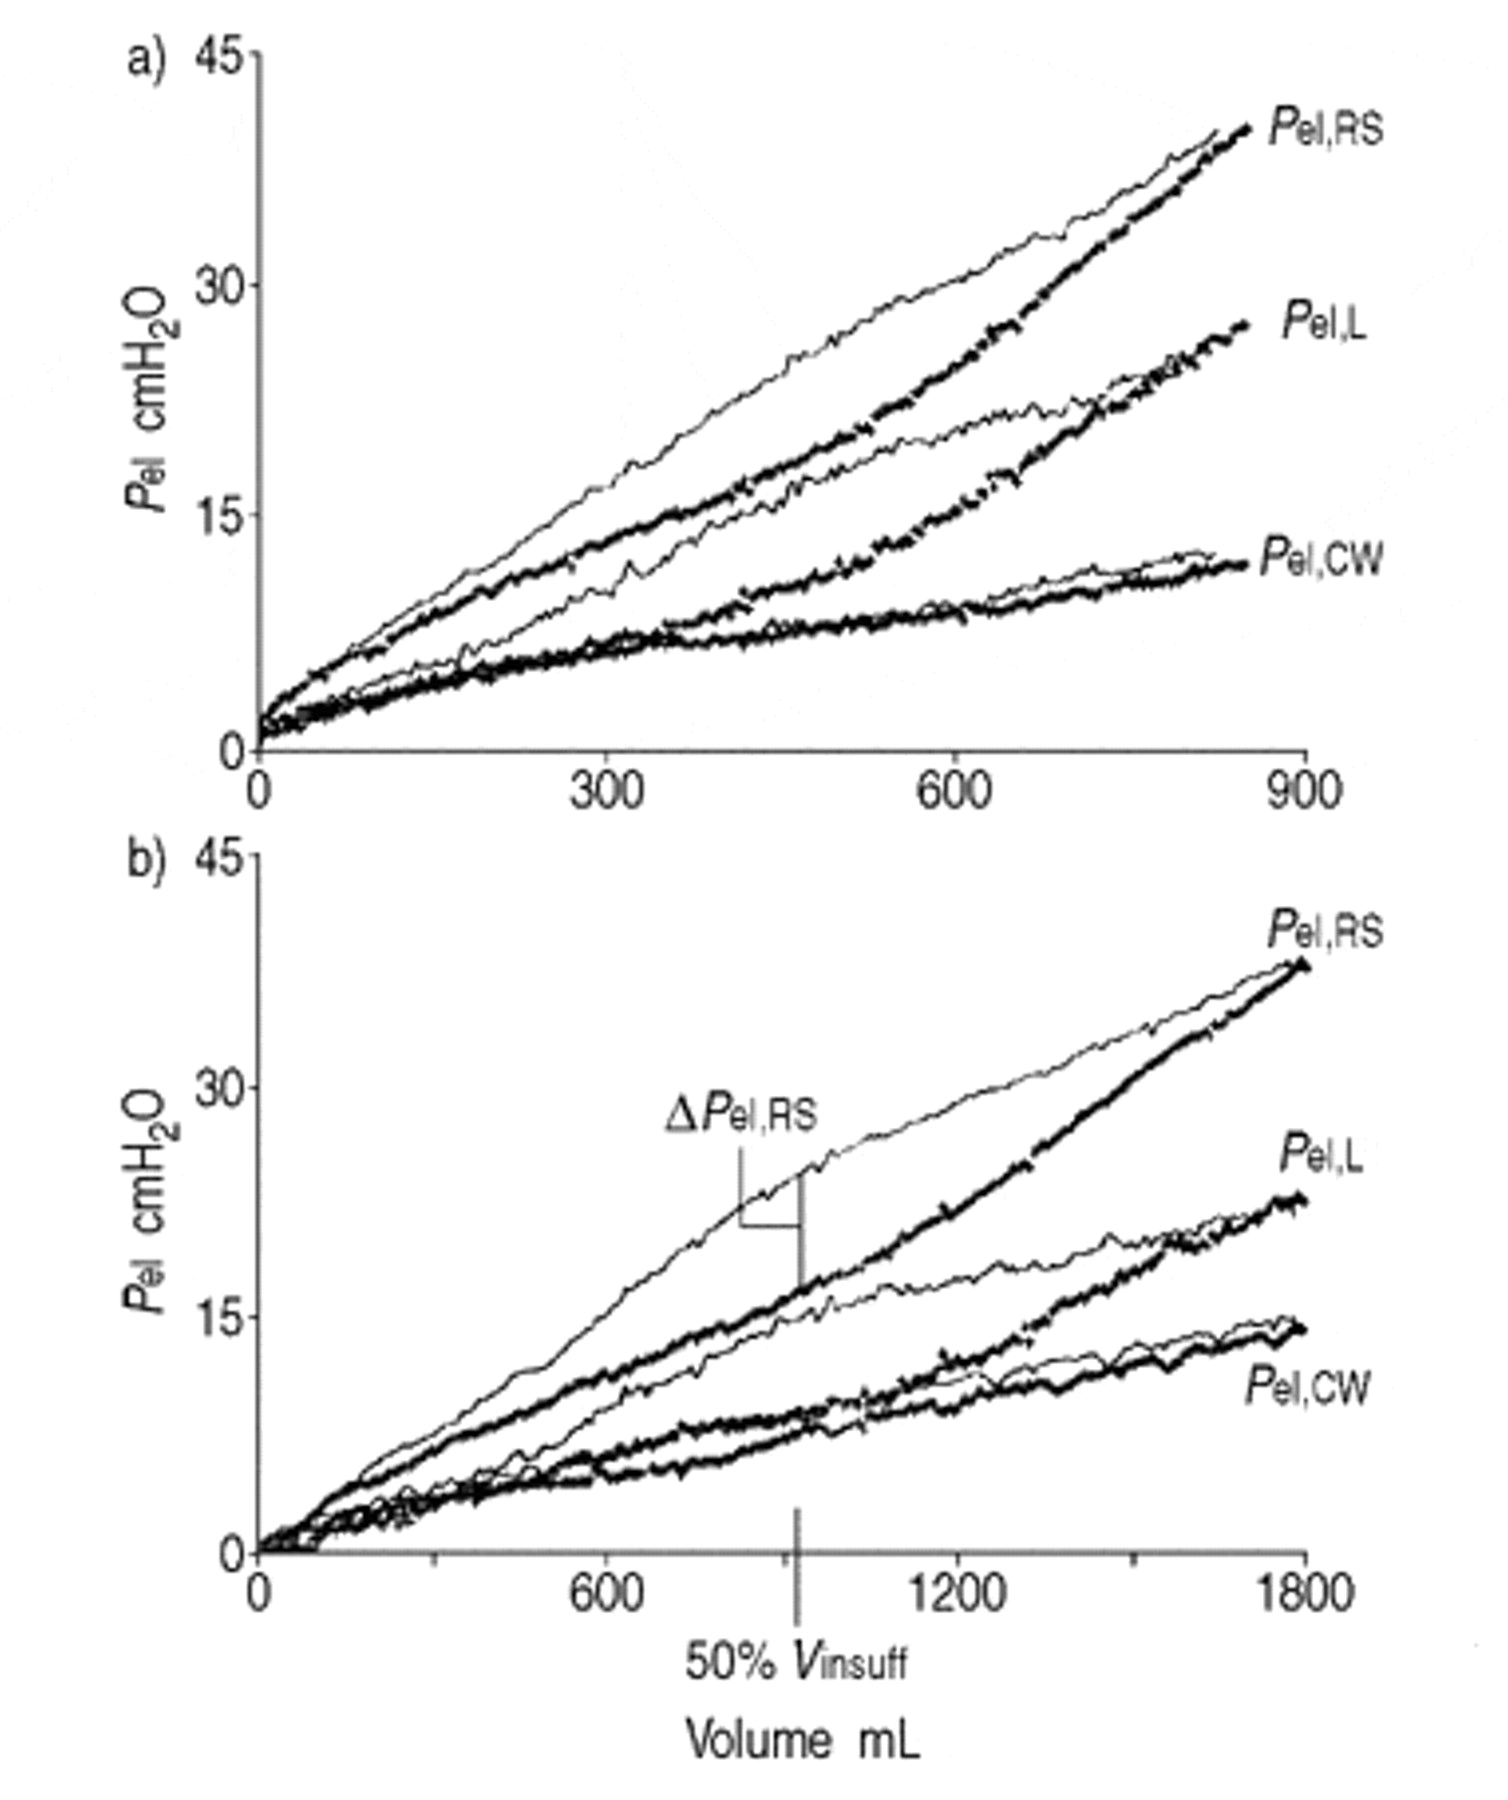 Elastic Properties Of The Lung And The Chest Wall In Young